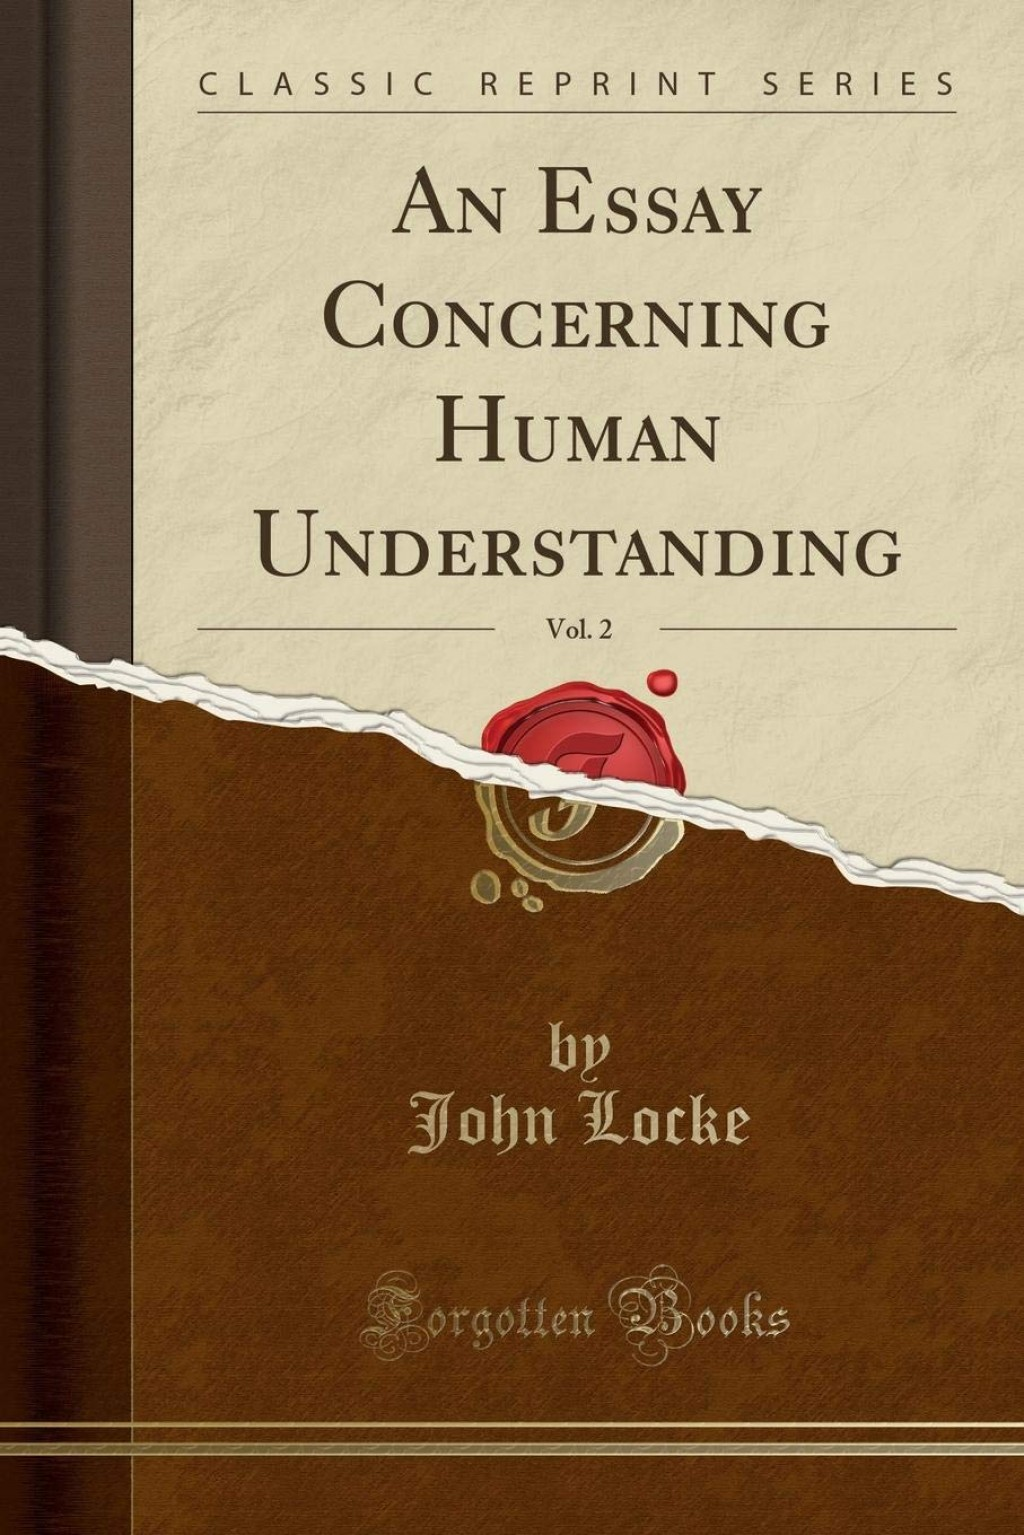 005 Essay Example 71own9pzywl An Concerning Human Stunning Understanding Summary Pdf John Locke Tabula Rasa Book 2 Chapter 27 Large